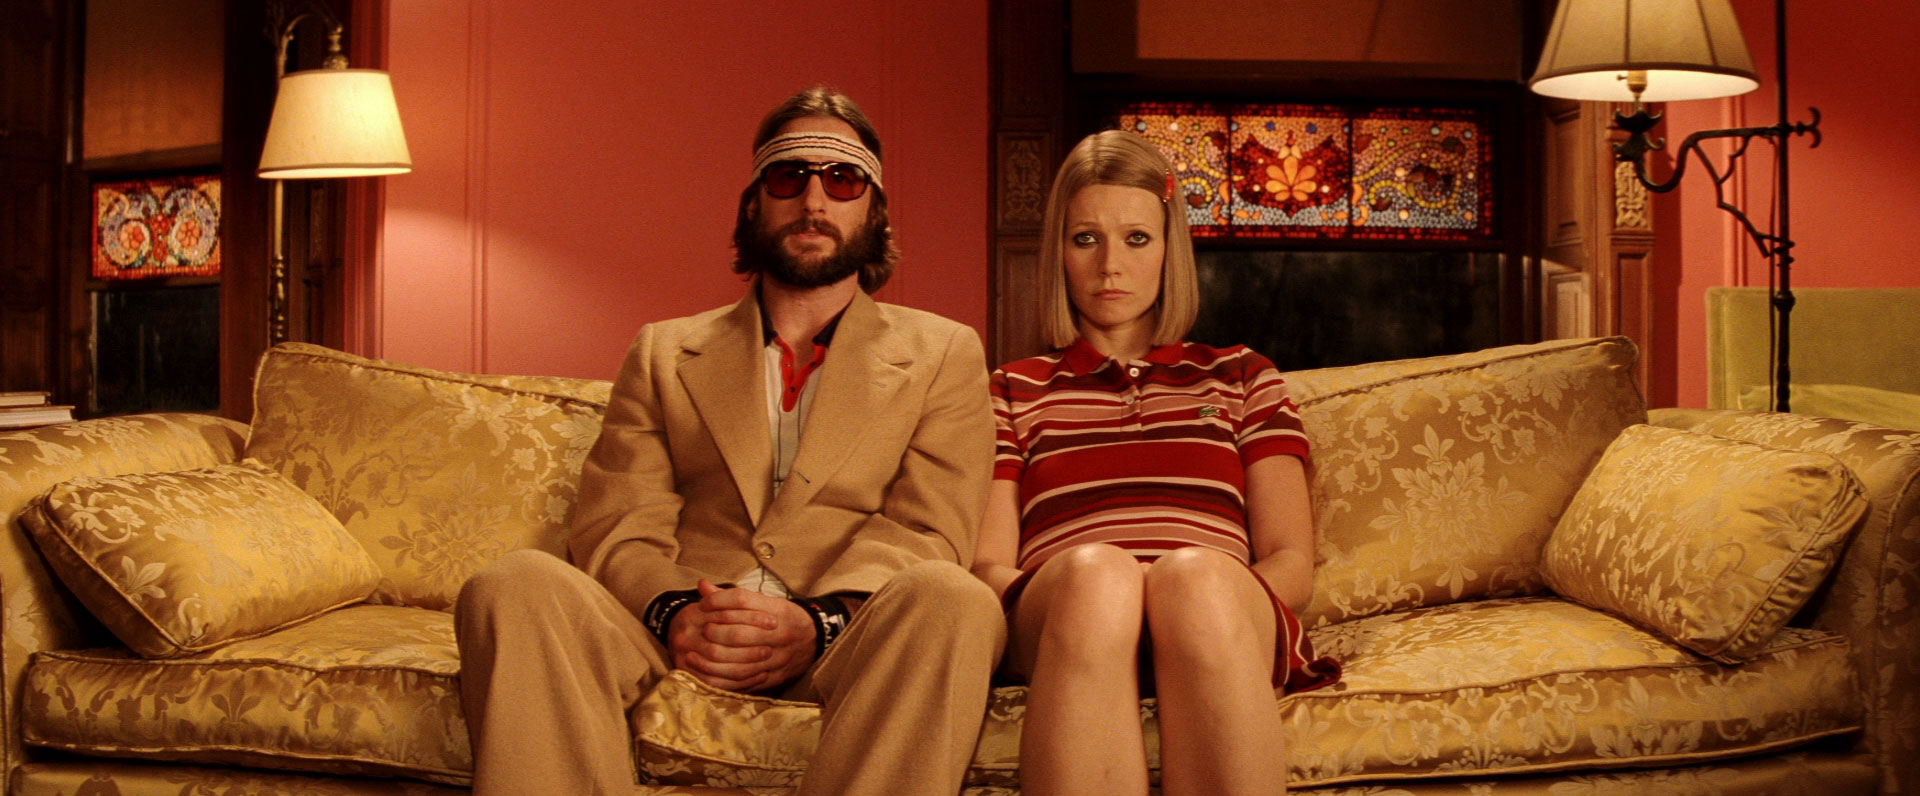 Style in Film: The Royal Tenenbaums | Classiq